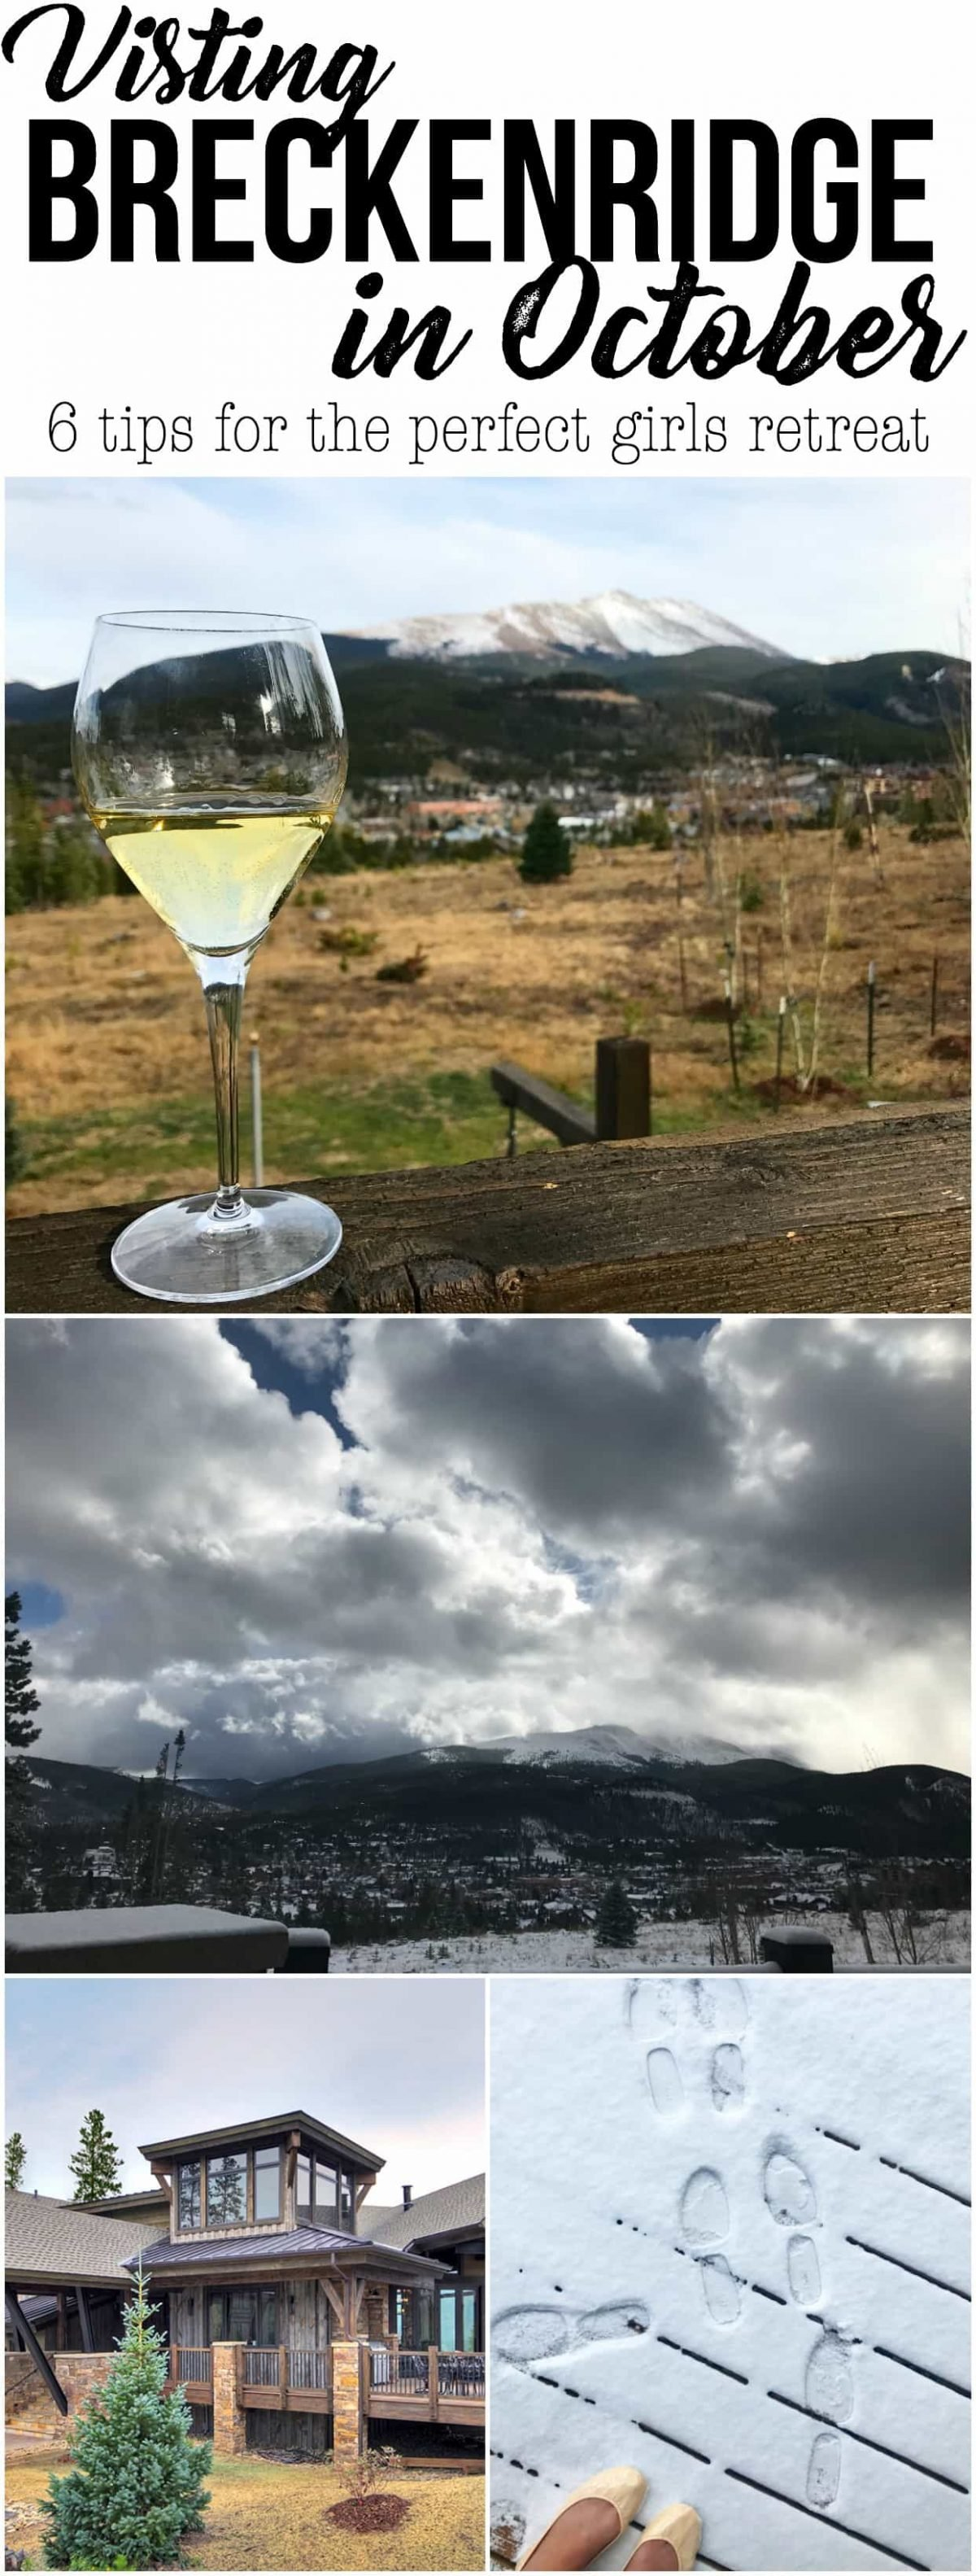 Thinking of visiting Breckenridge in October? Do it! These 6 tips for the perfect girls weekend will allow you to have the best time in Colorado, whether you like to ski or not.